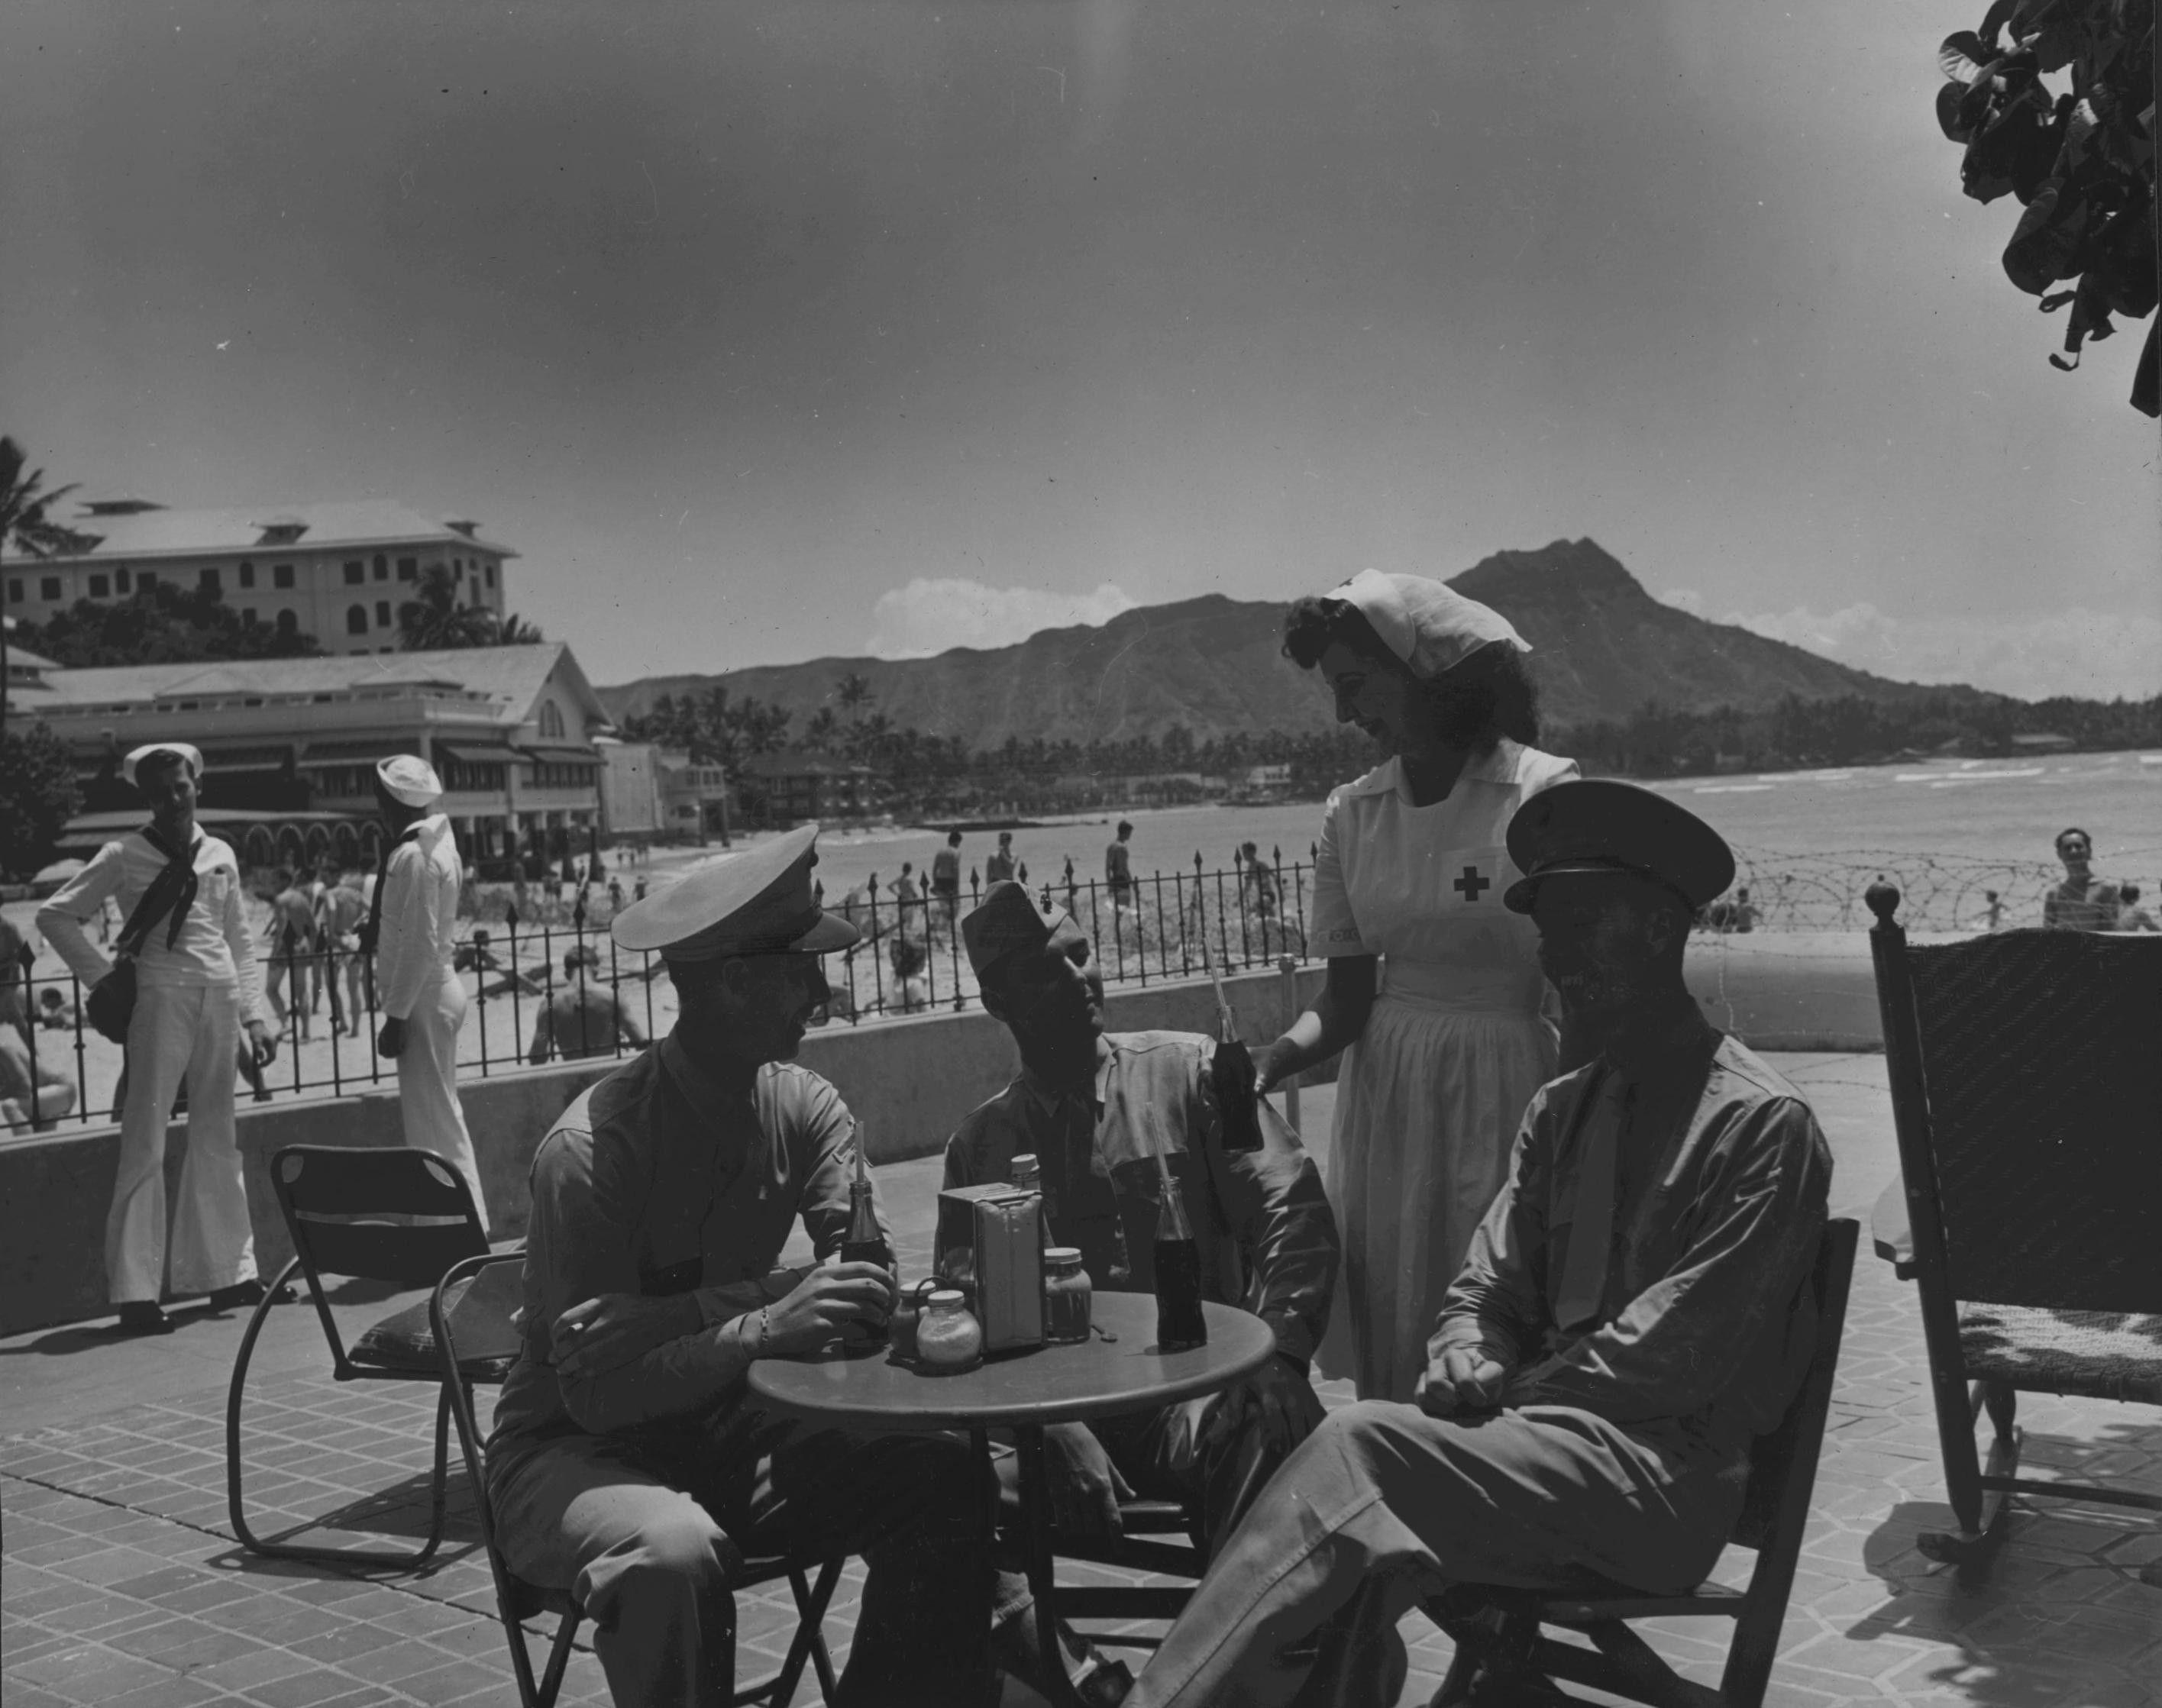 [Photo] US Marines and sailors at the Royal Hawaiian Hotel, Waikiki Beach,  Honolulu, US Territory of Hawaii, 1942